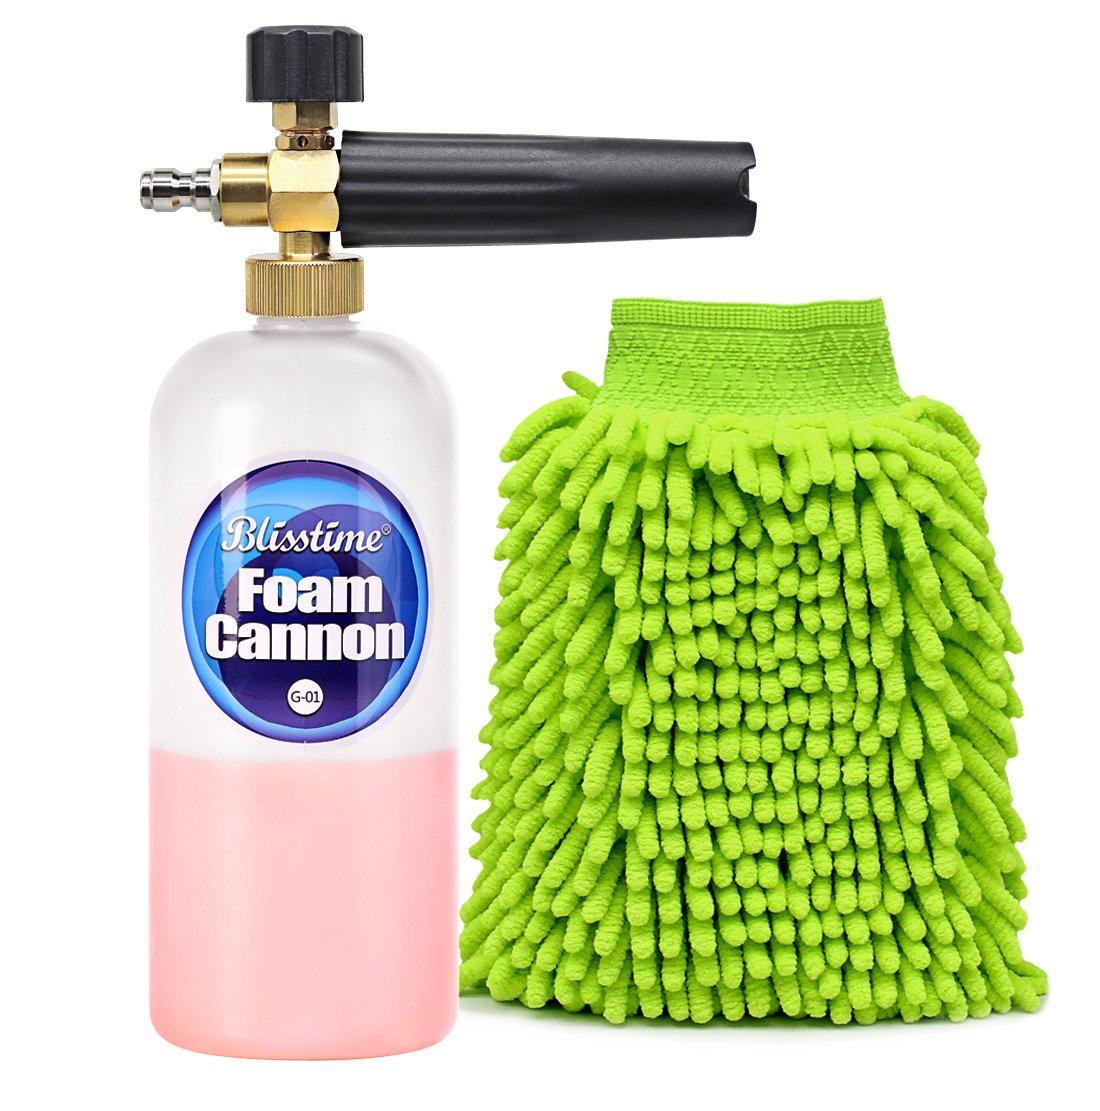 Blisstime Foam Cannon with Wash Mitt